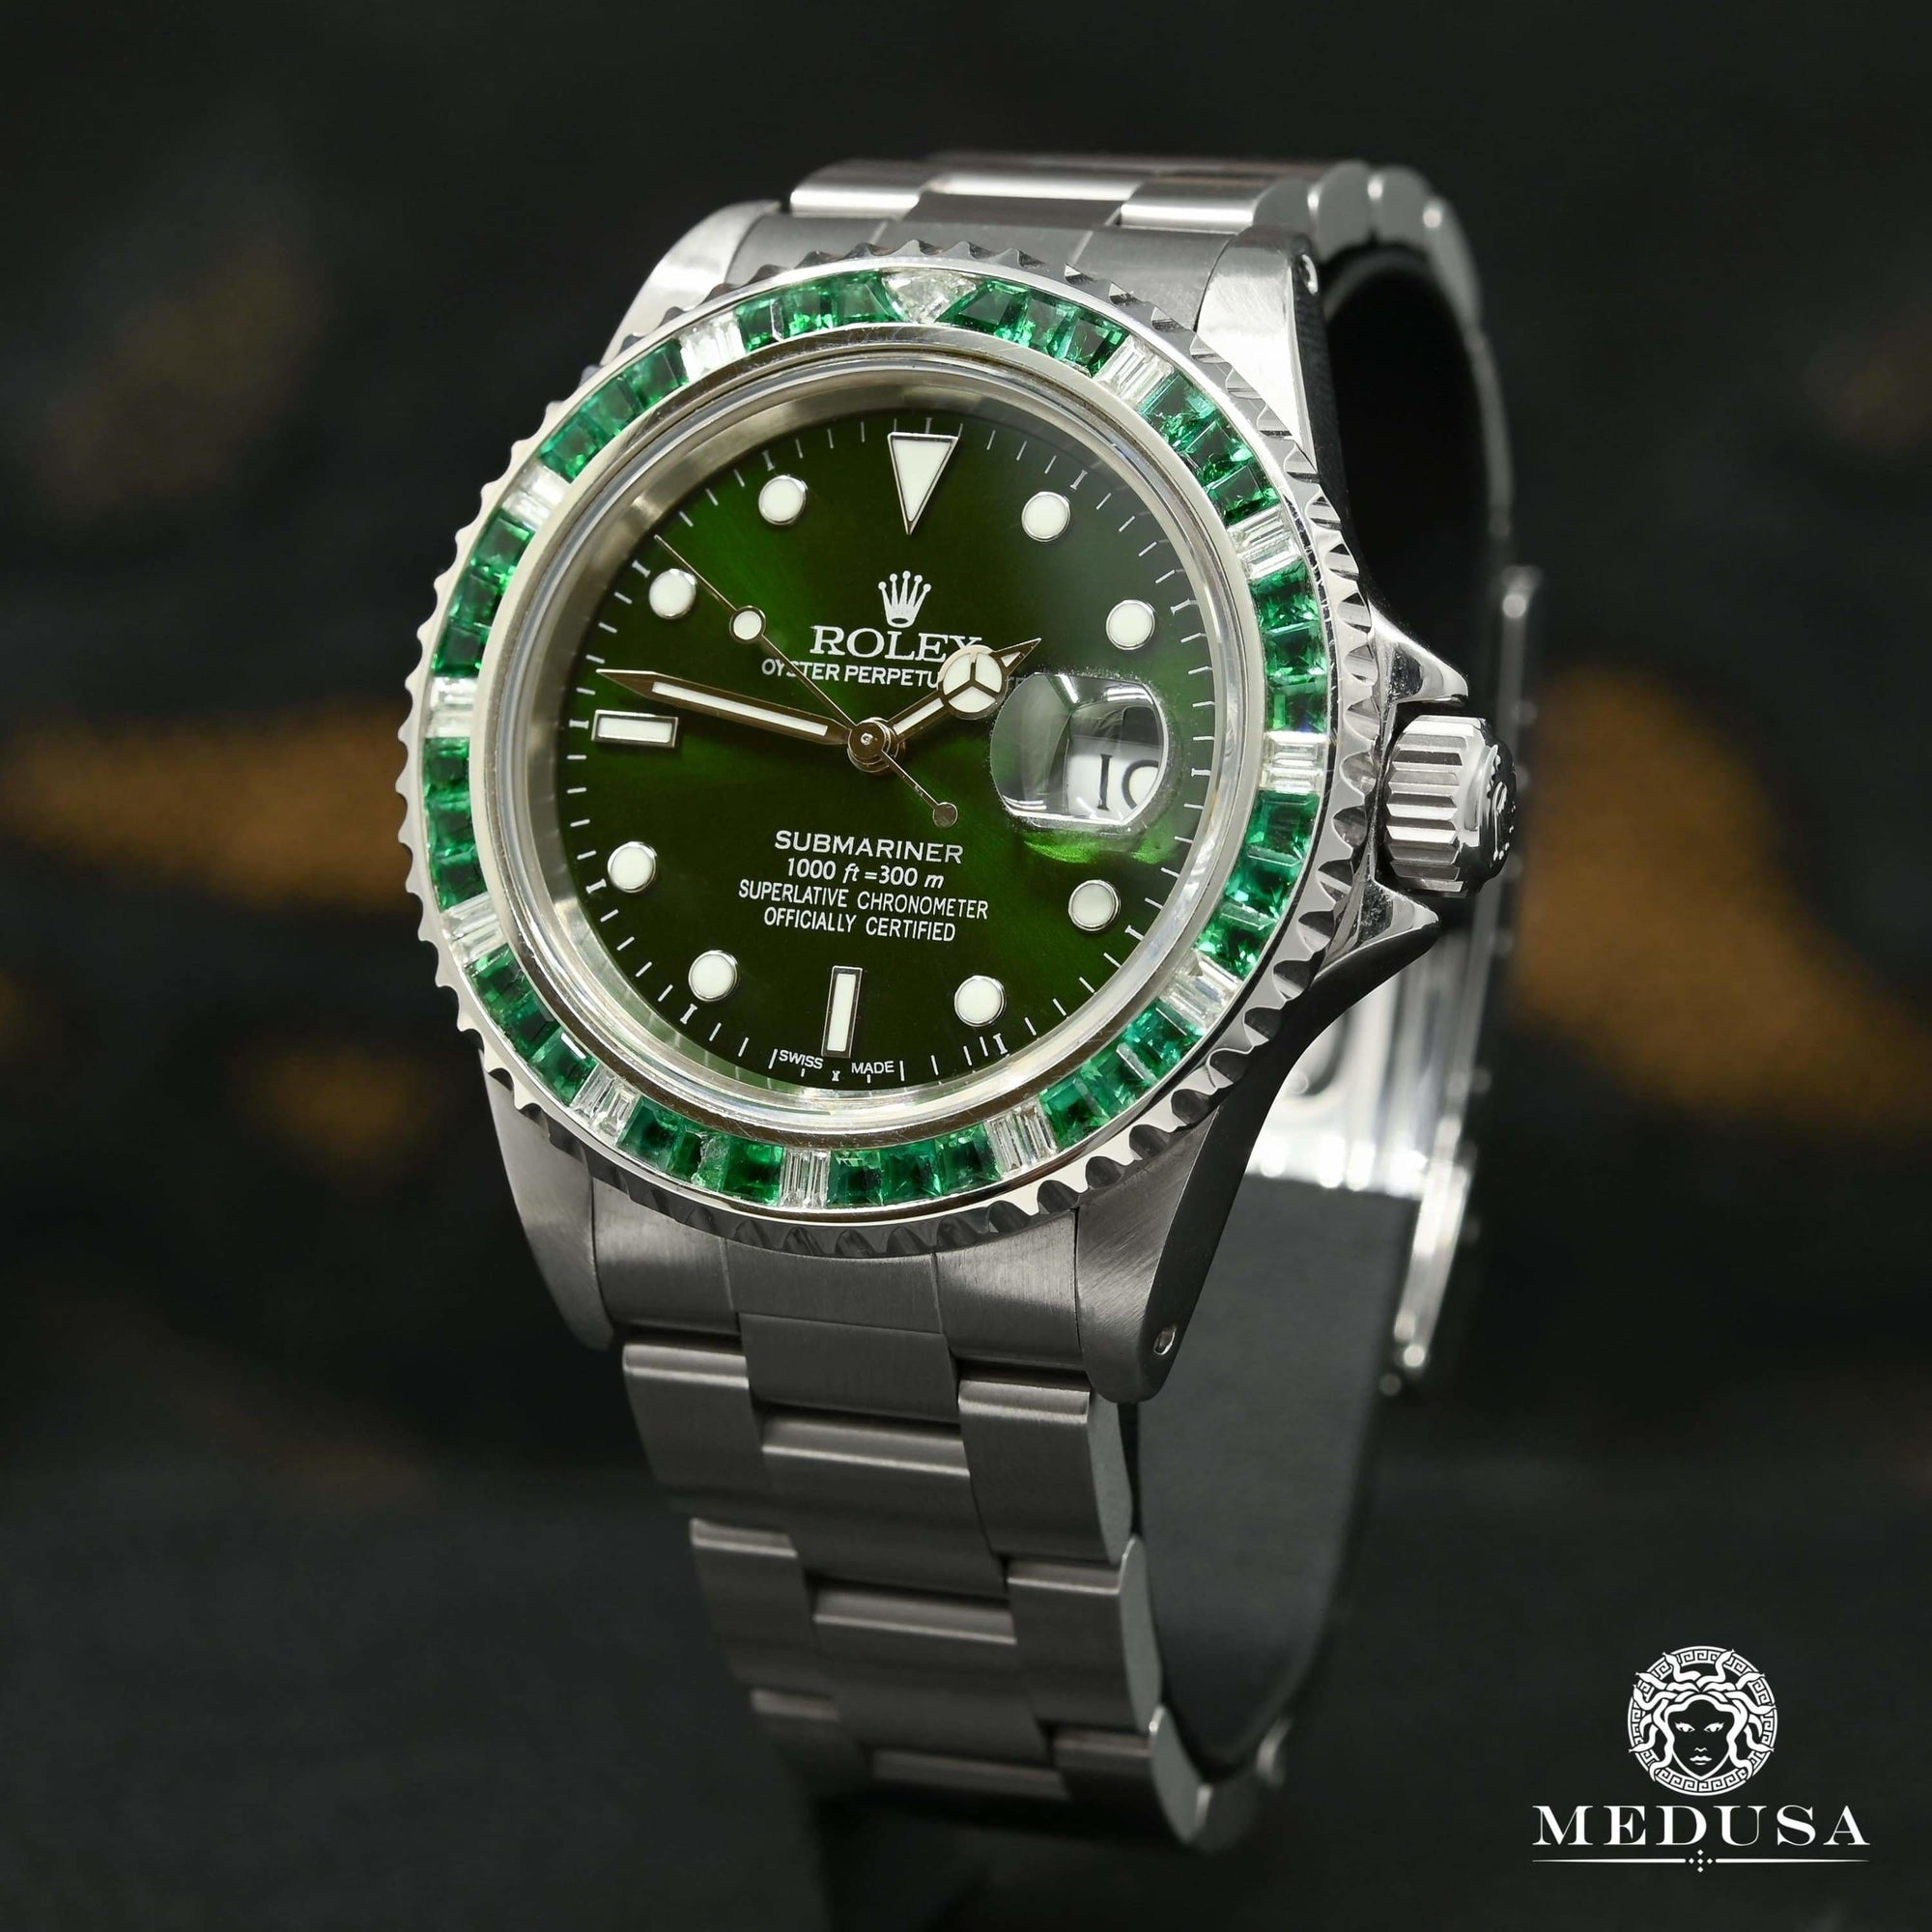 Rolex Submariner 40mm - Hulk Diamond & Emerald